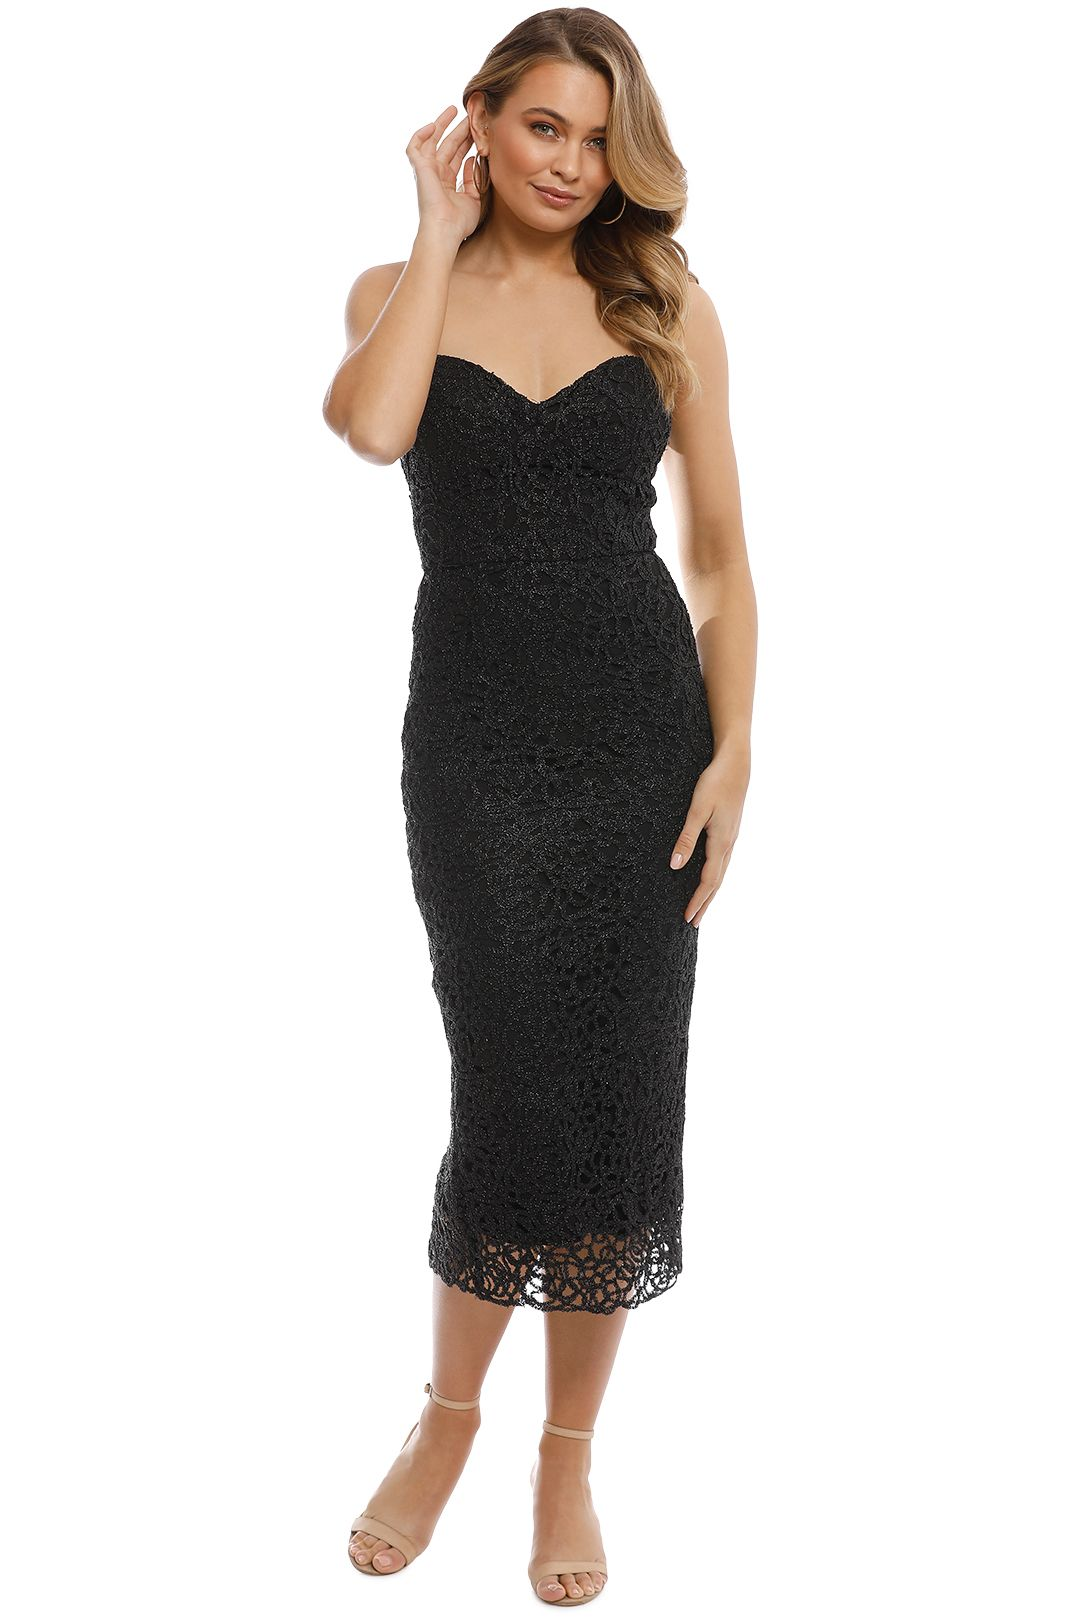 Unspoken - Stargaze Dress - Black - Front